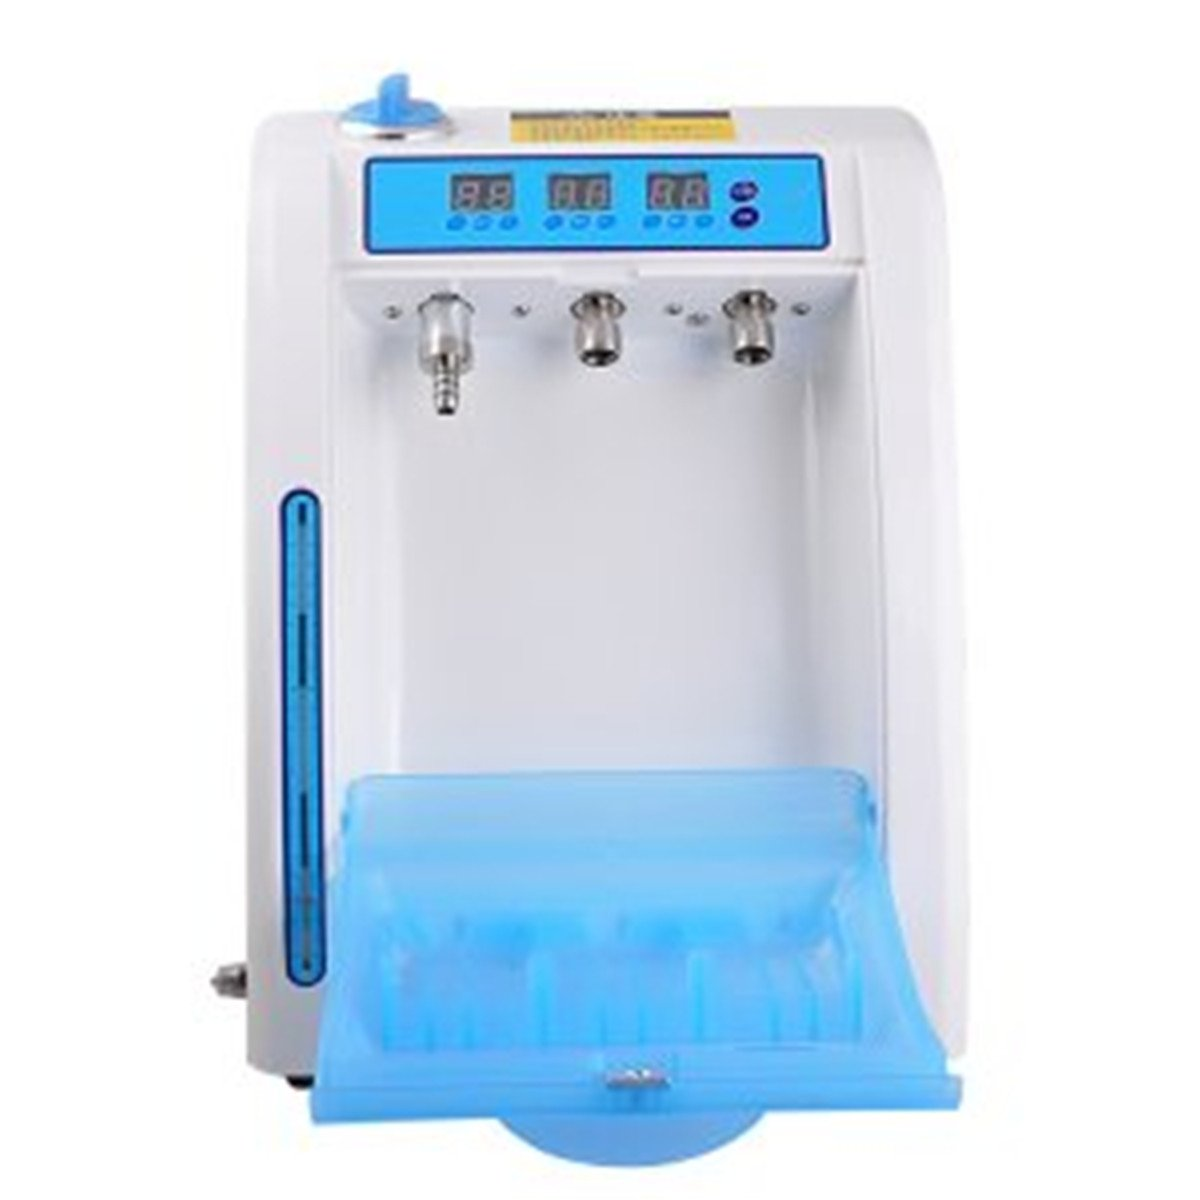 Dental Handpiece Maintenance Oil System Lubricating Device Machine Lubrication System 110V (Shipped from US)